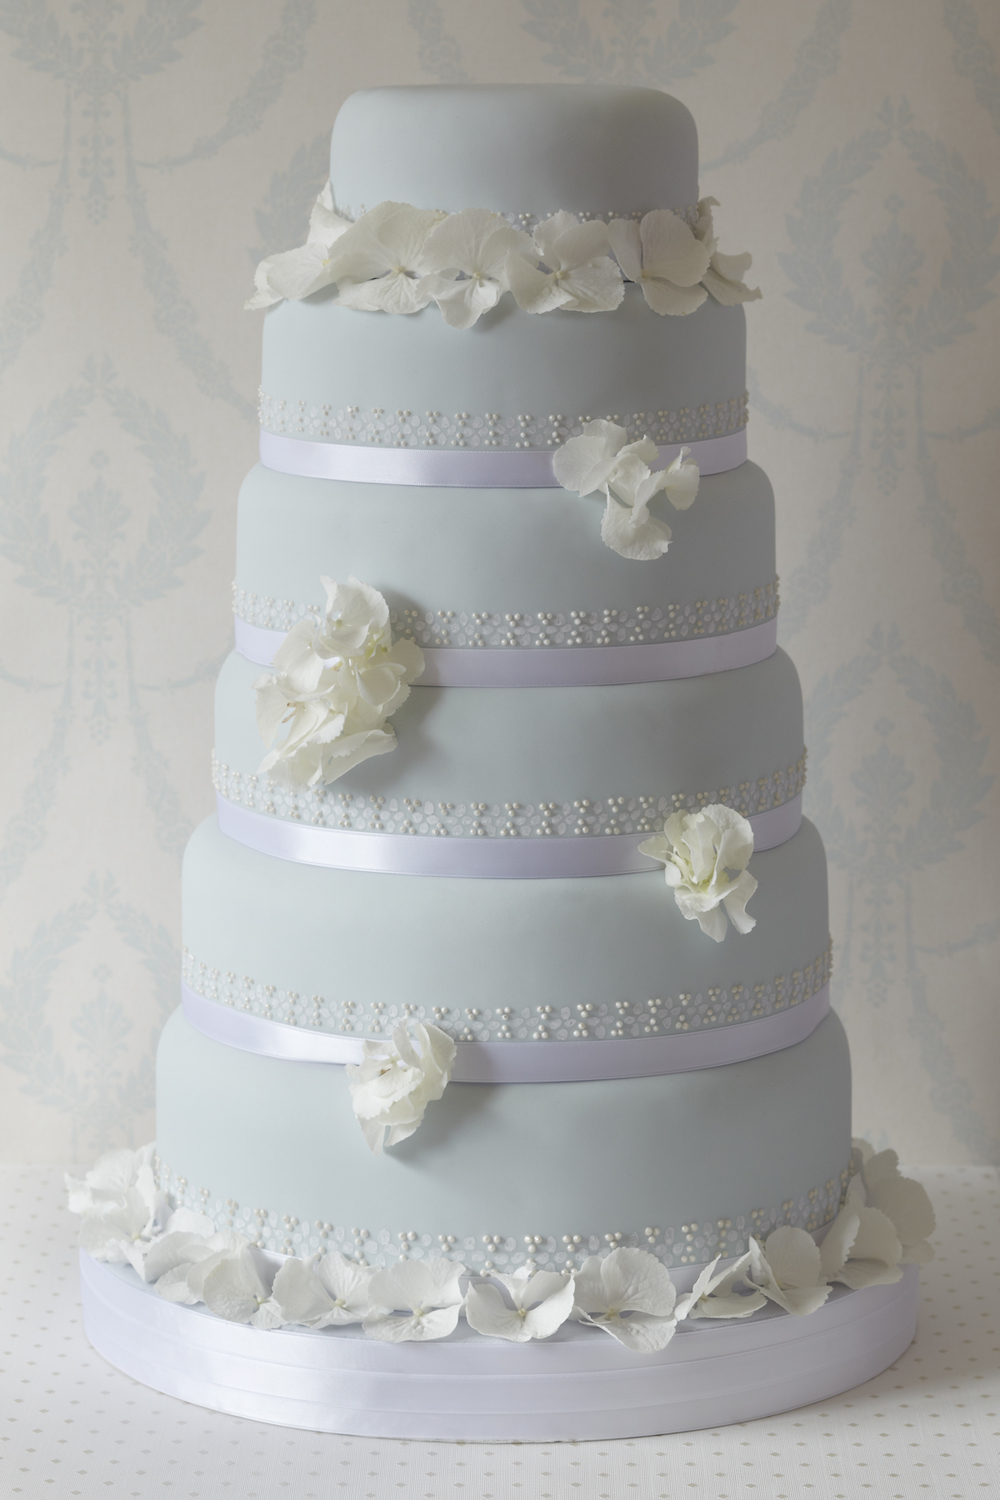 Rhapsody in Blue wedding cake